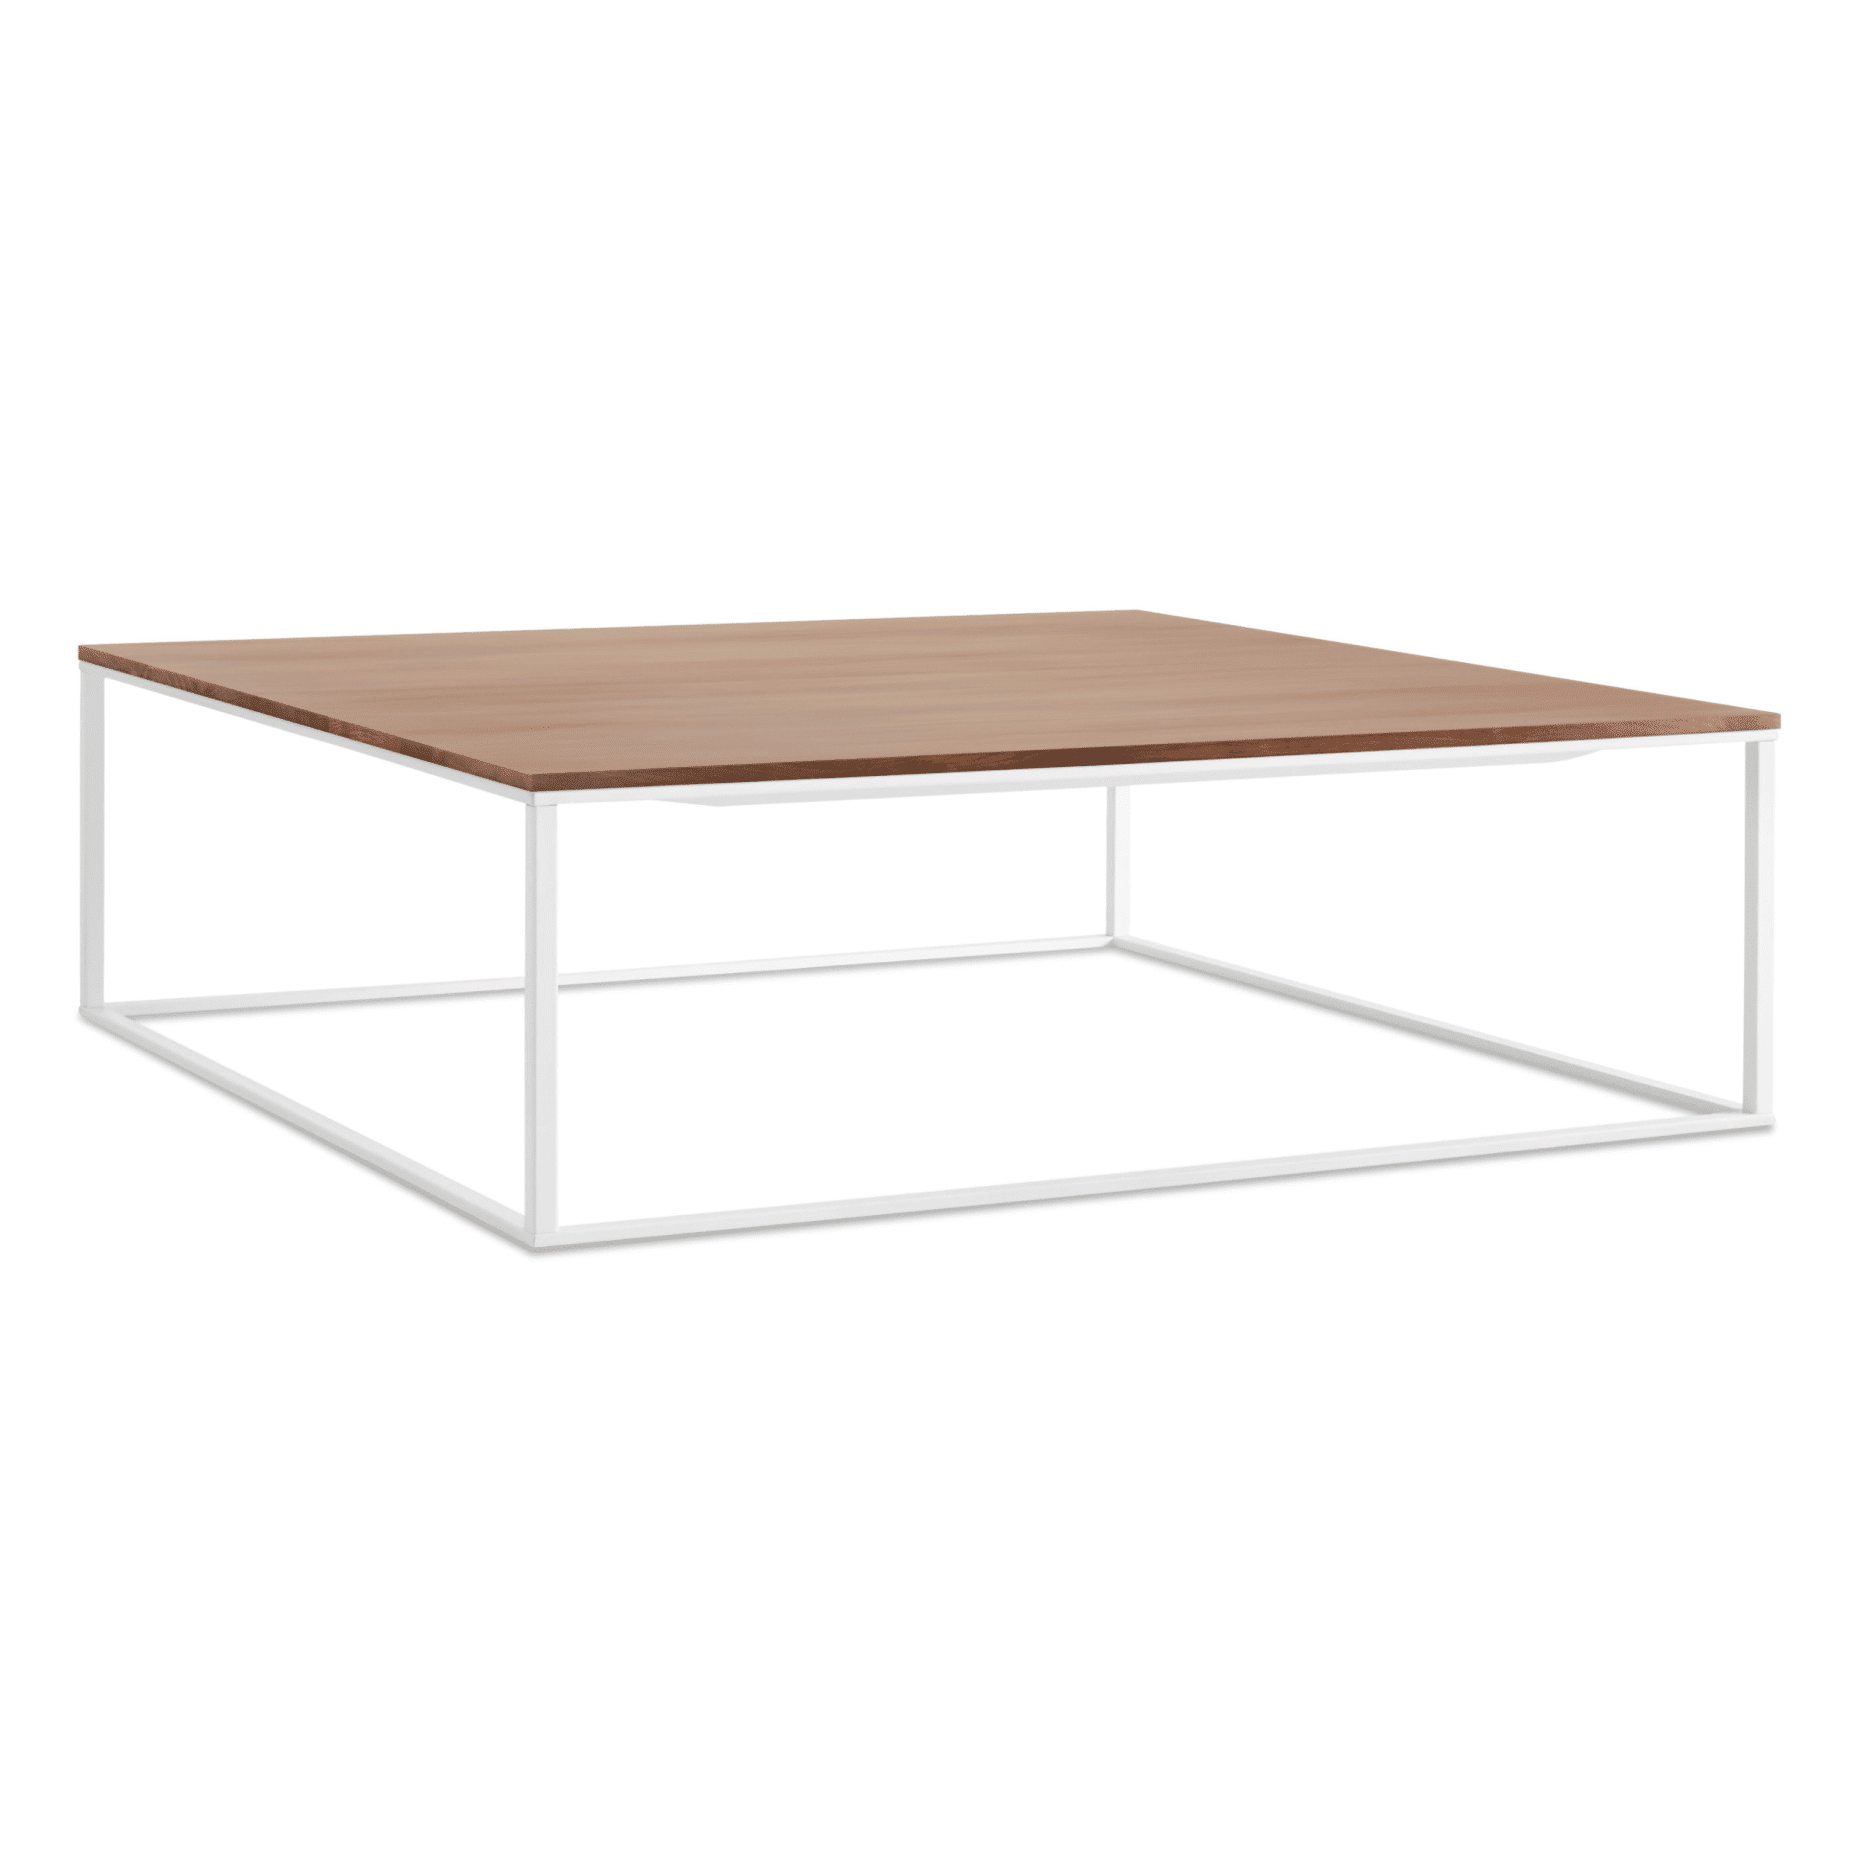 mn1 sqcfwh wl 34 minimalista square coffee table white walnut 1